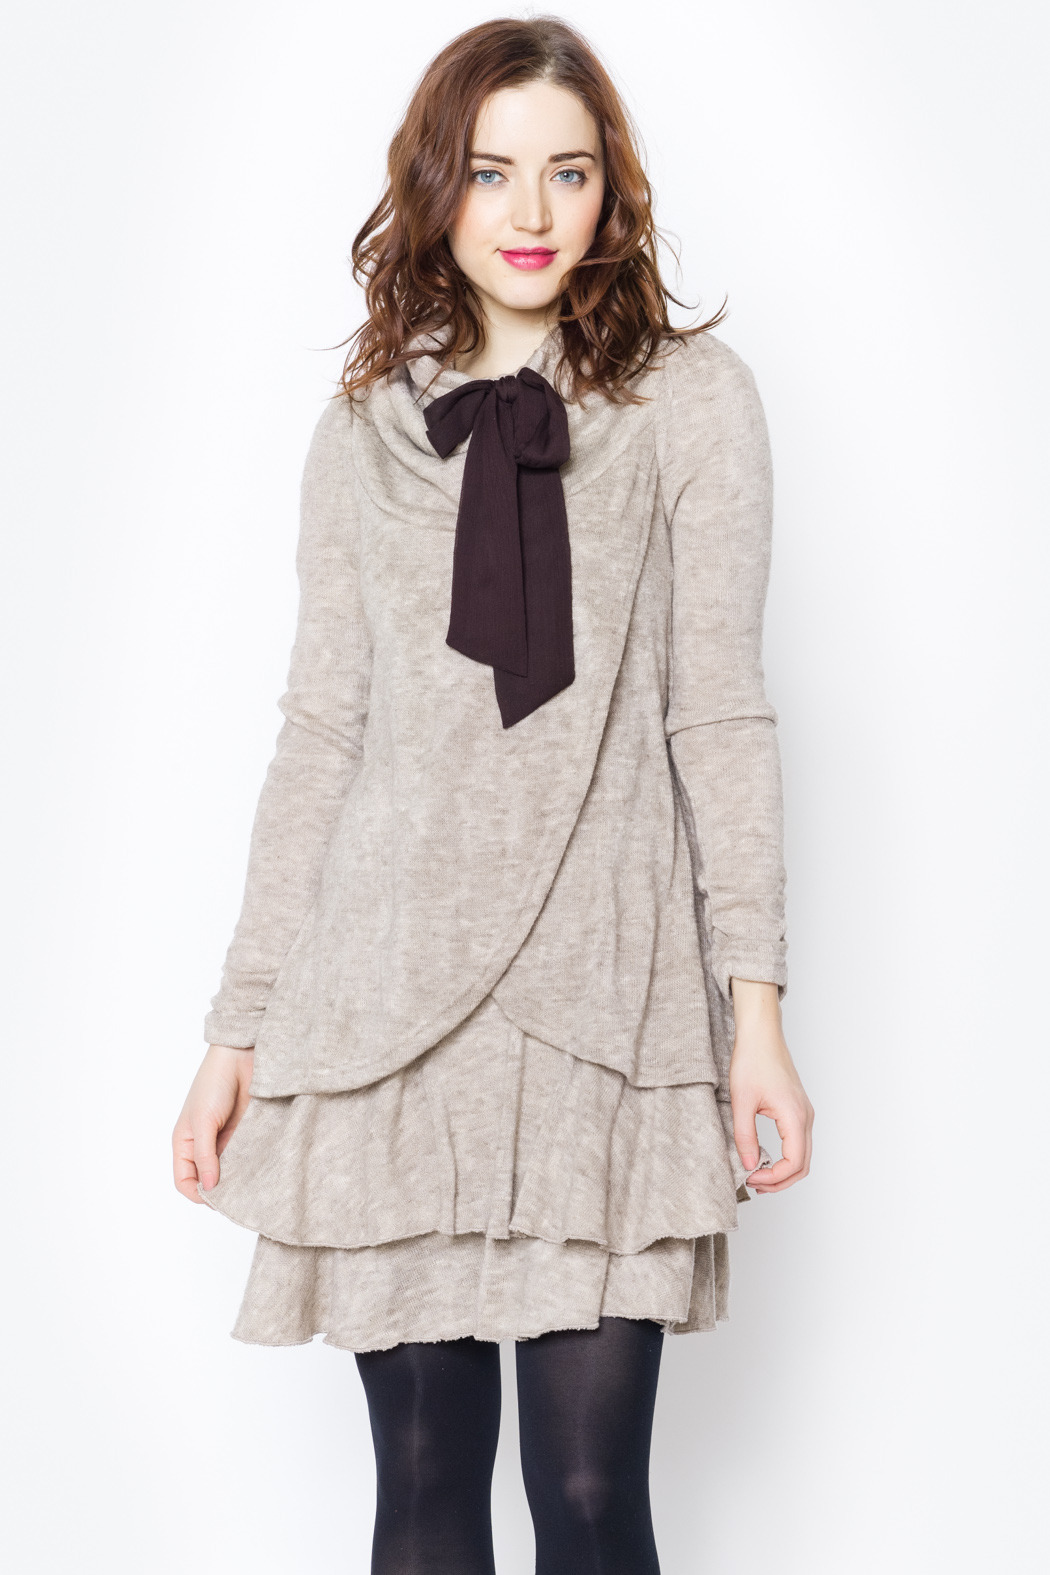 Ryu Cowl Neck Sweater Dress from North Shore by Addicted — Shoptiques